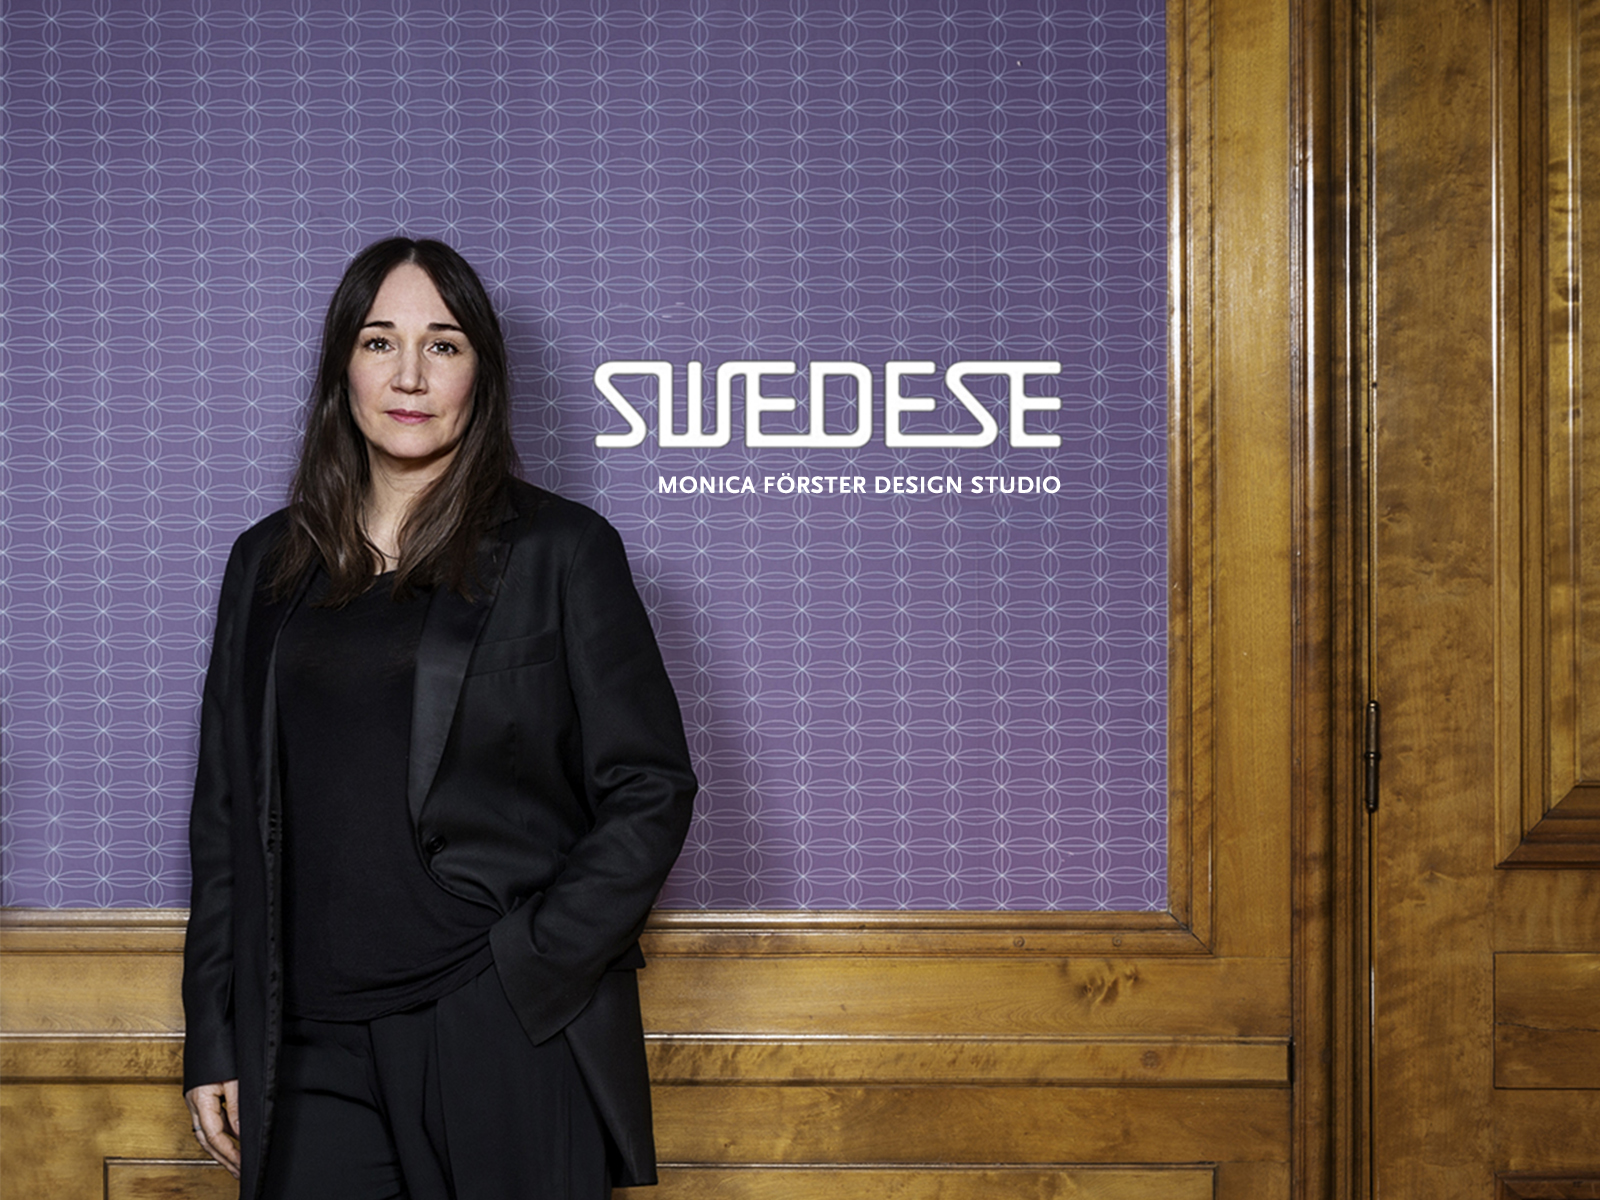 Monica Förster Design Studio for Swedese - A new Creative Direction assignment for the studio